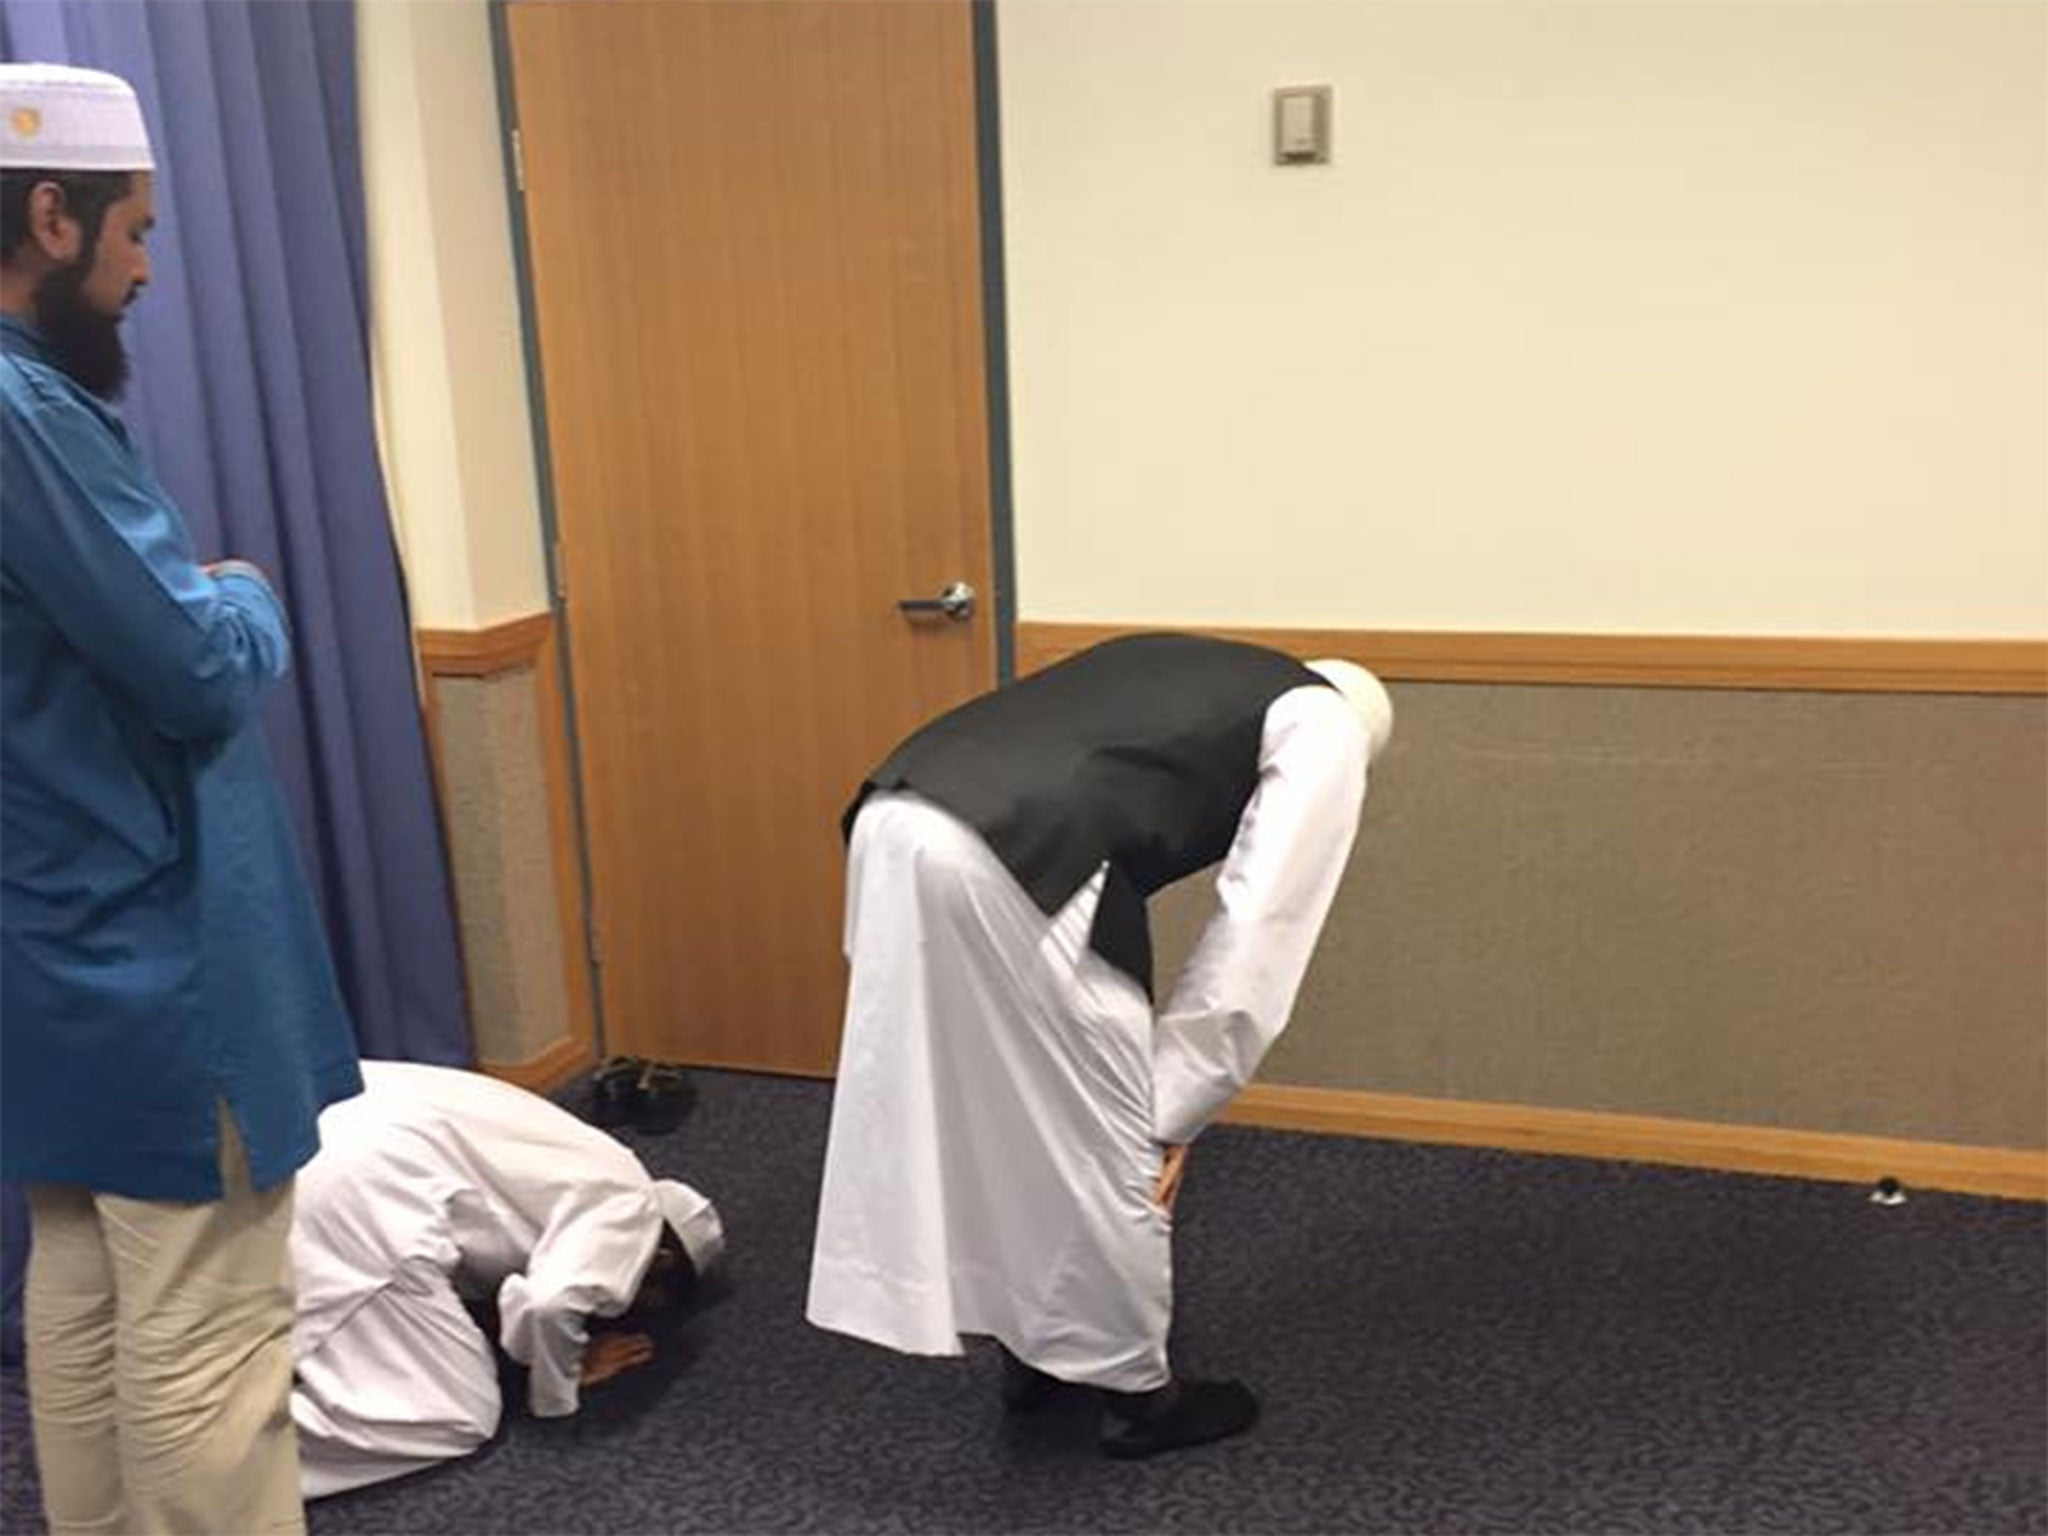 Pictures of Muslim men in Mormon church show      two faiths praying to same God in different way        The Independent